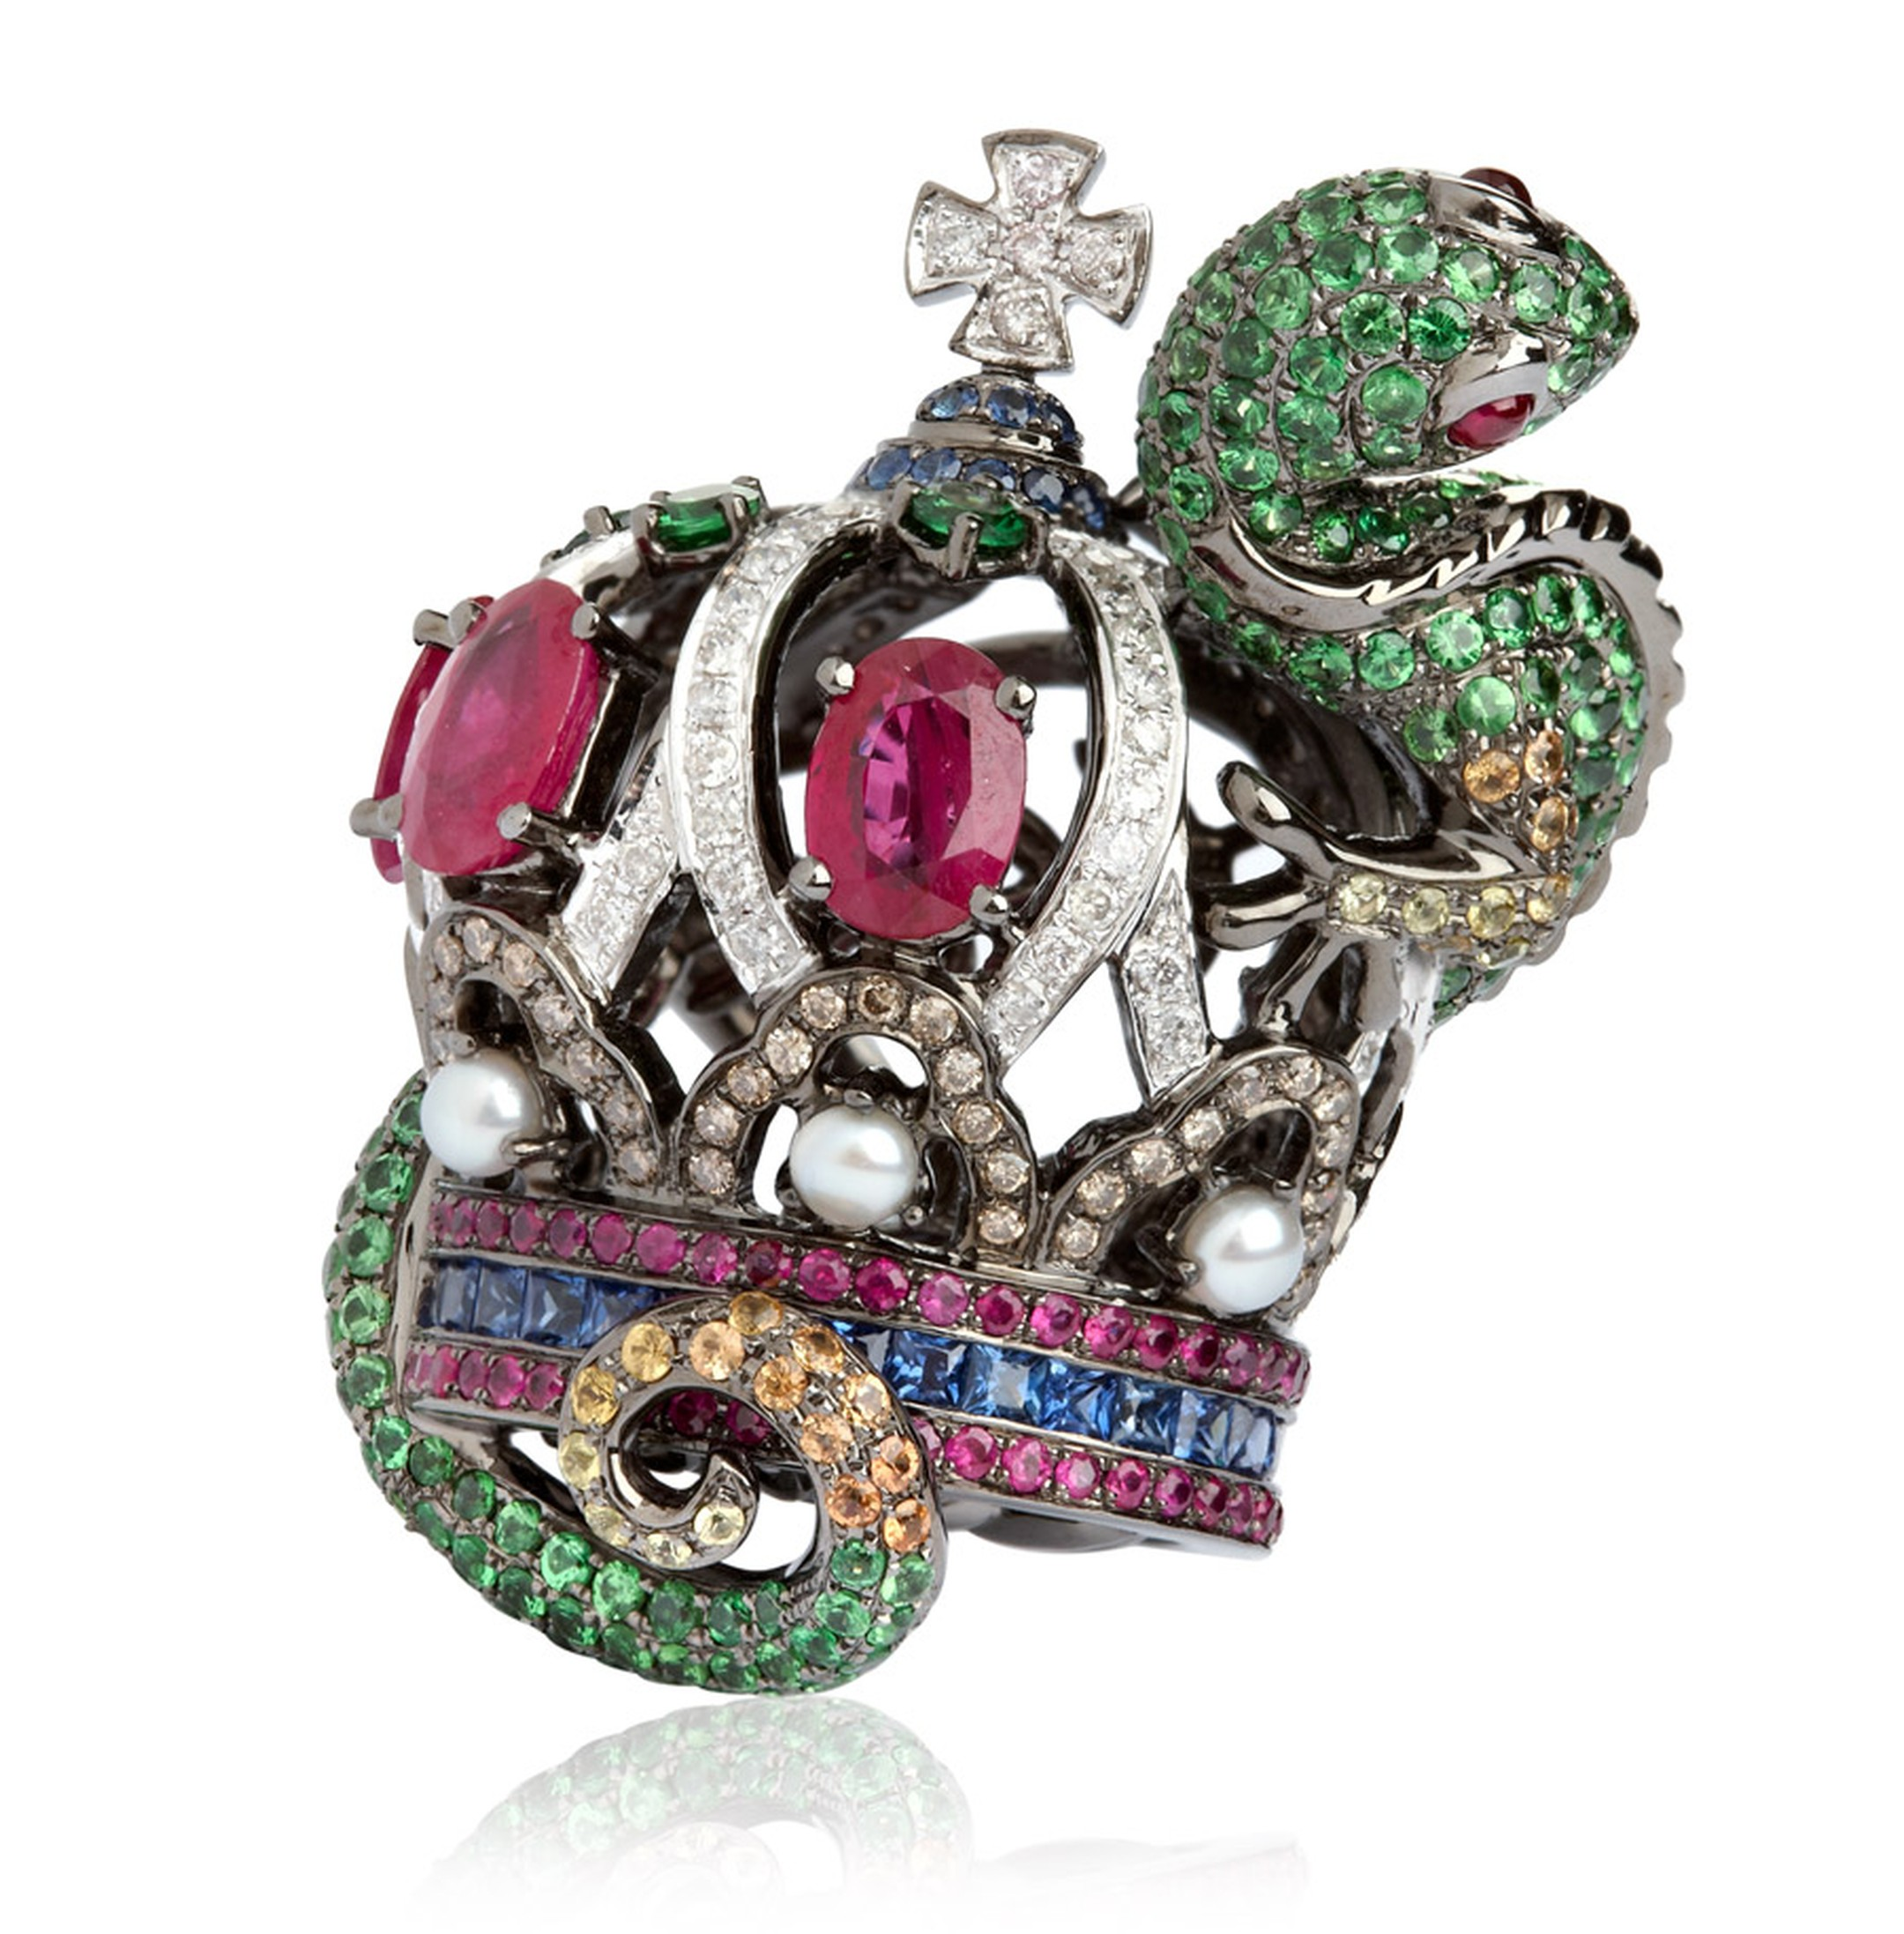 Wendy-Yue-Fantasie-Jubilee-18ct-white-gold diamond sapphire garnet-and-ruby-Lizard-ring.jpg